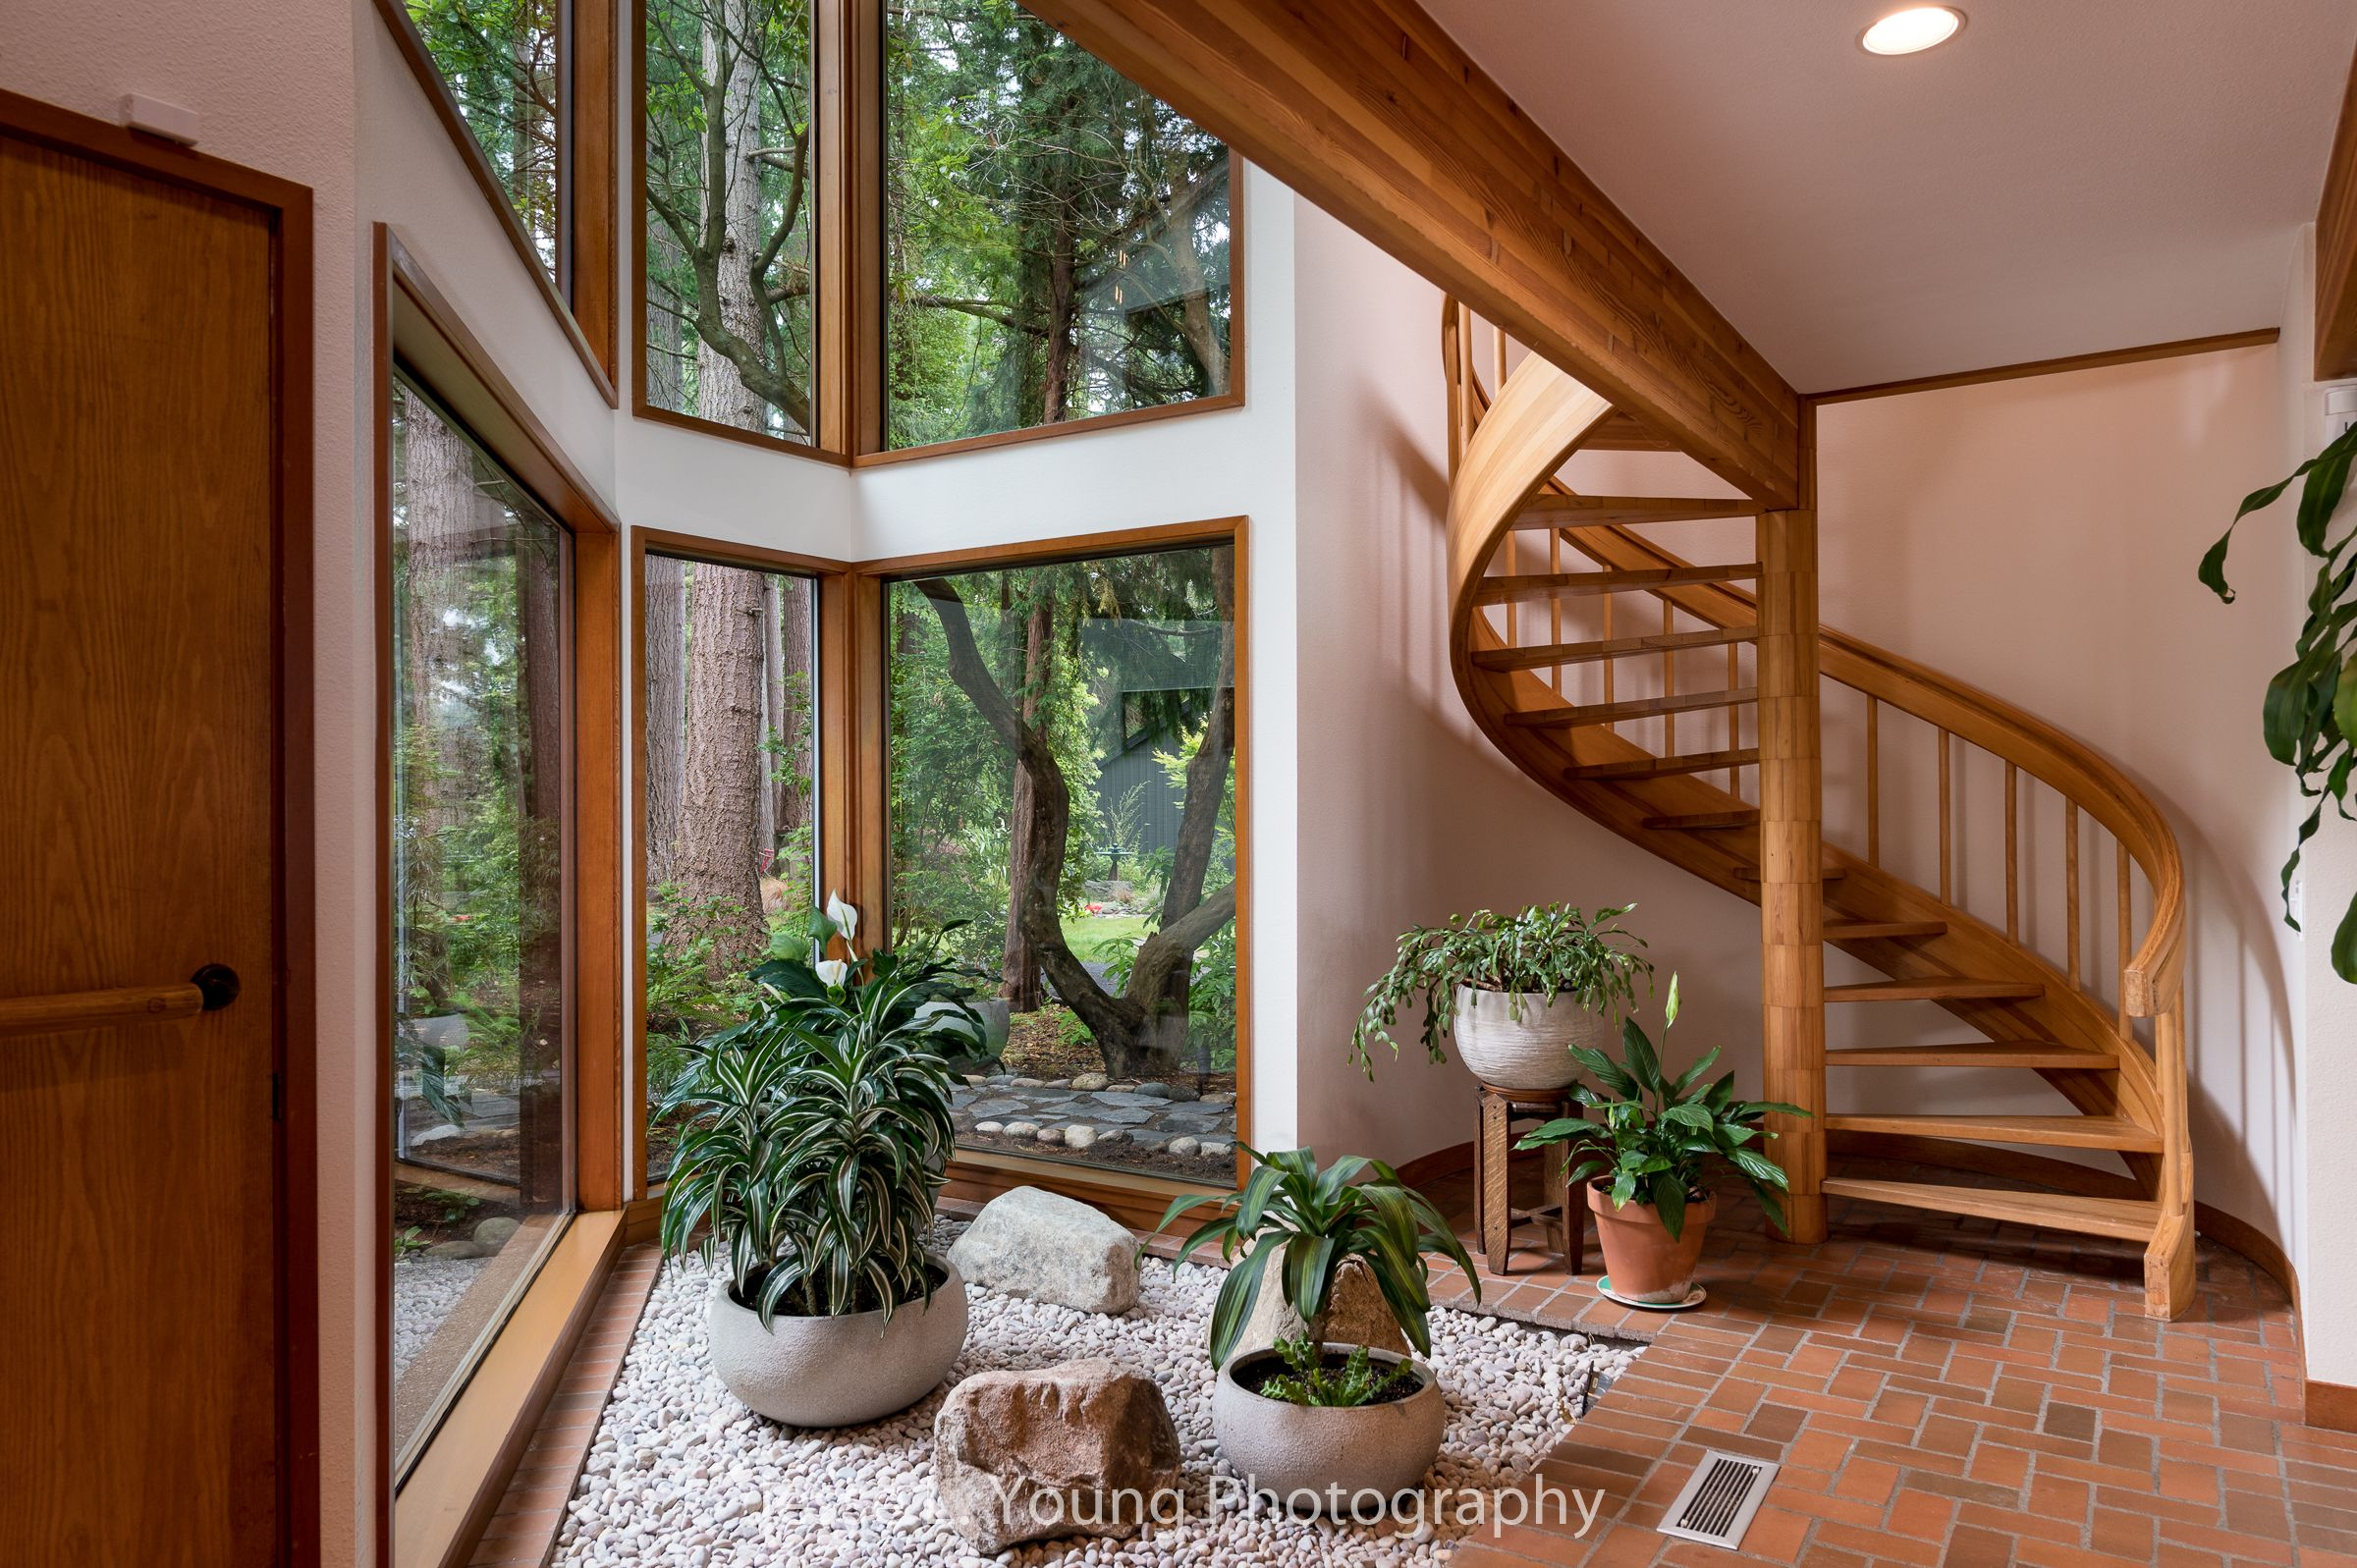 Gig Harbor real estate photographer